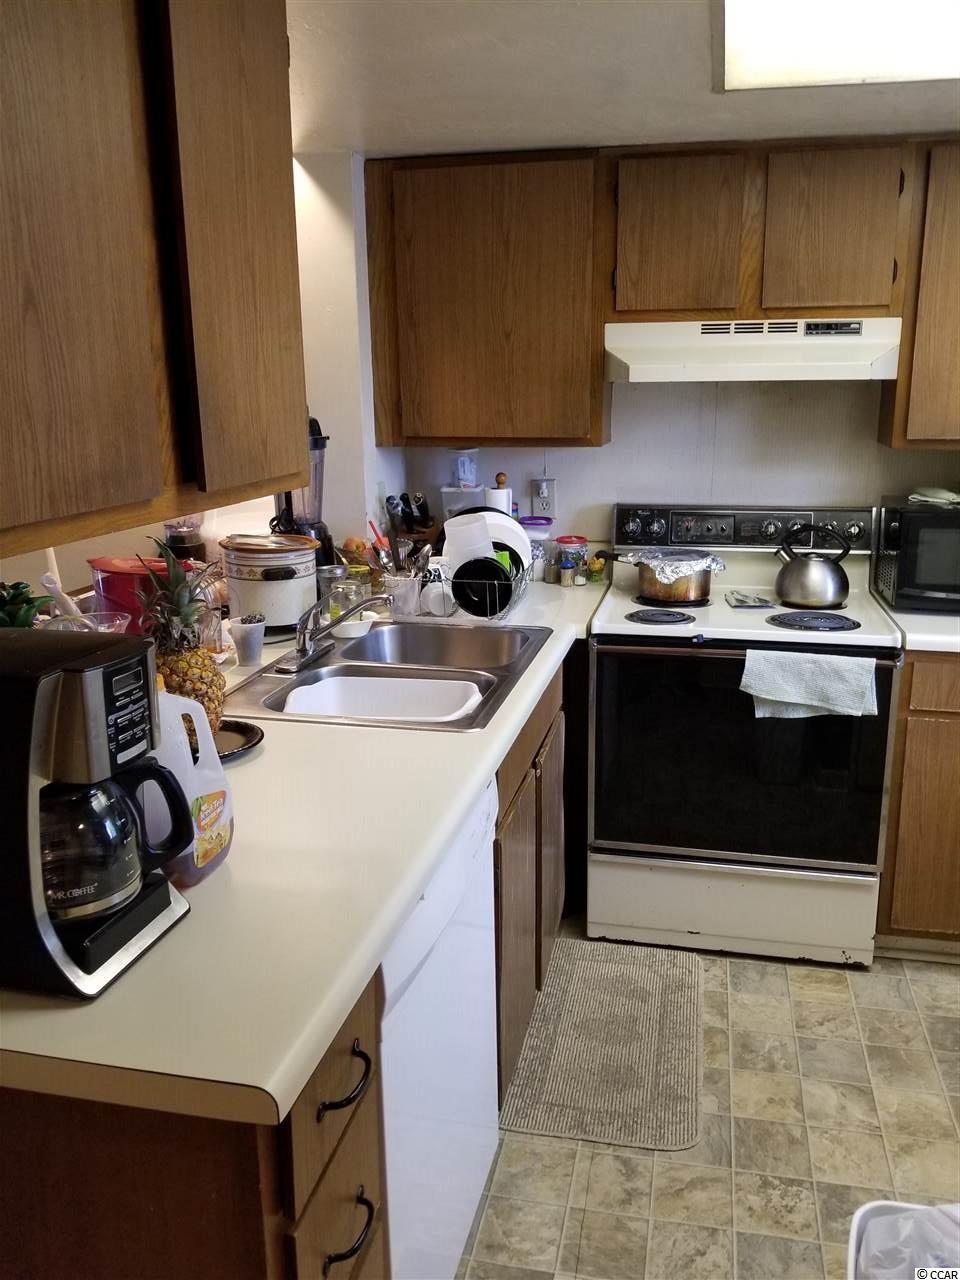 2 bedroom  WESTWIND condo for sale